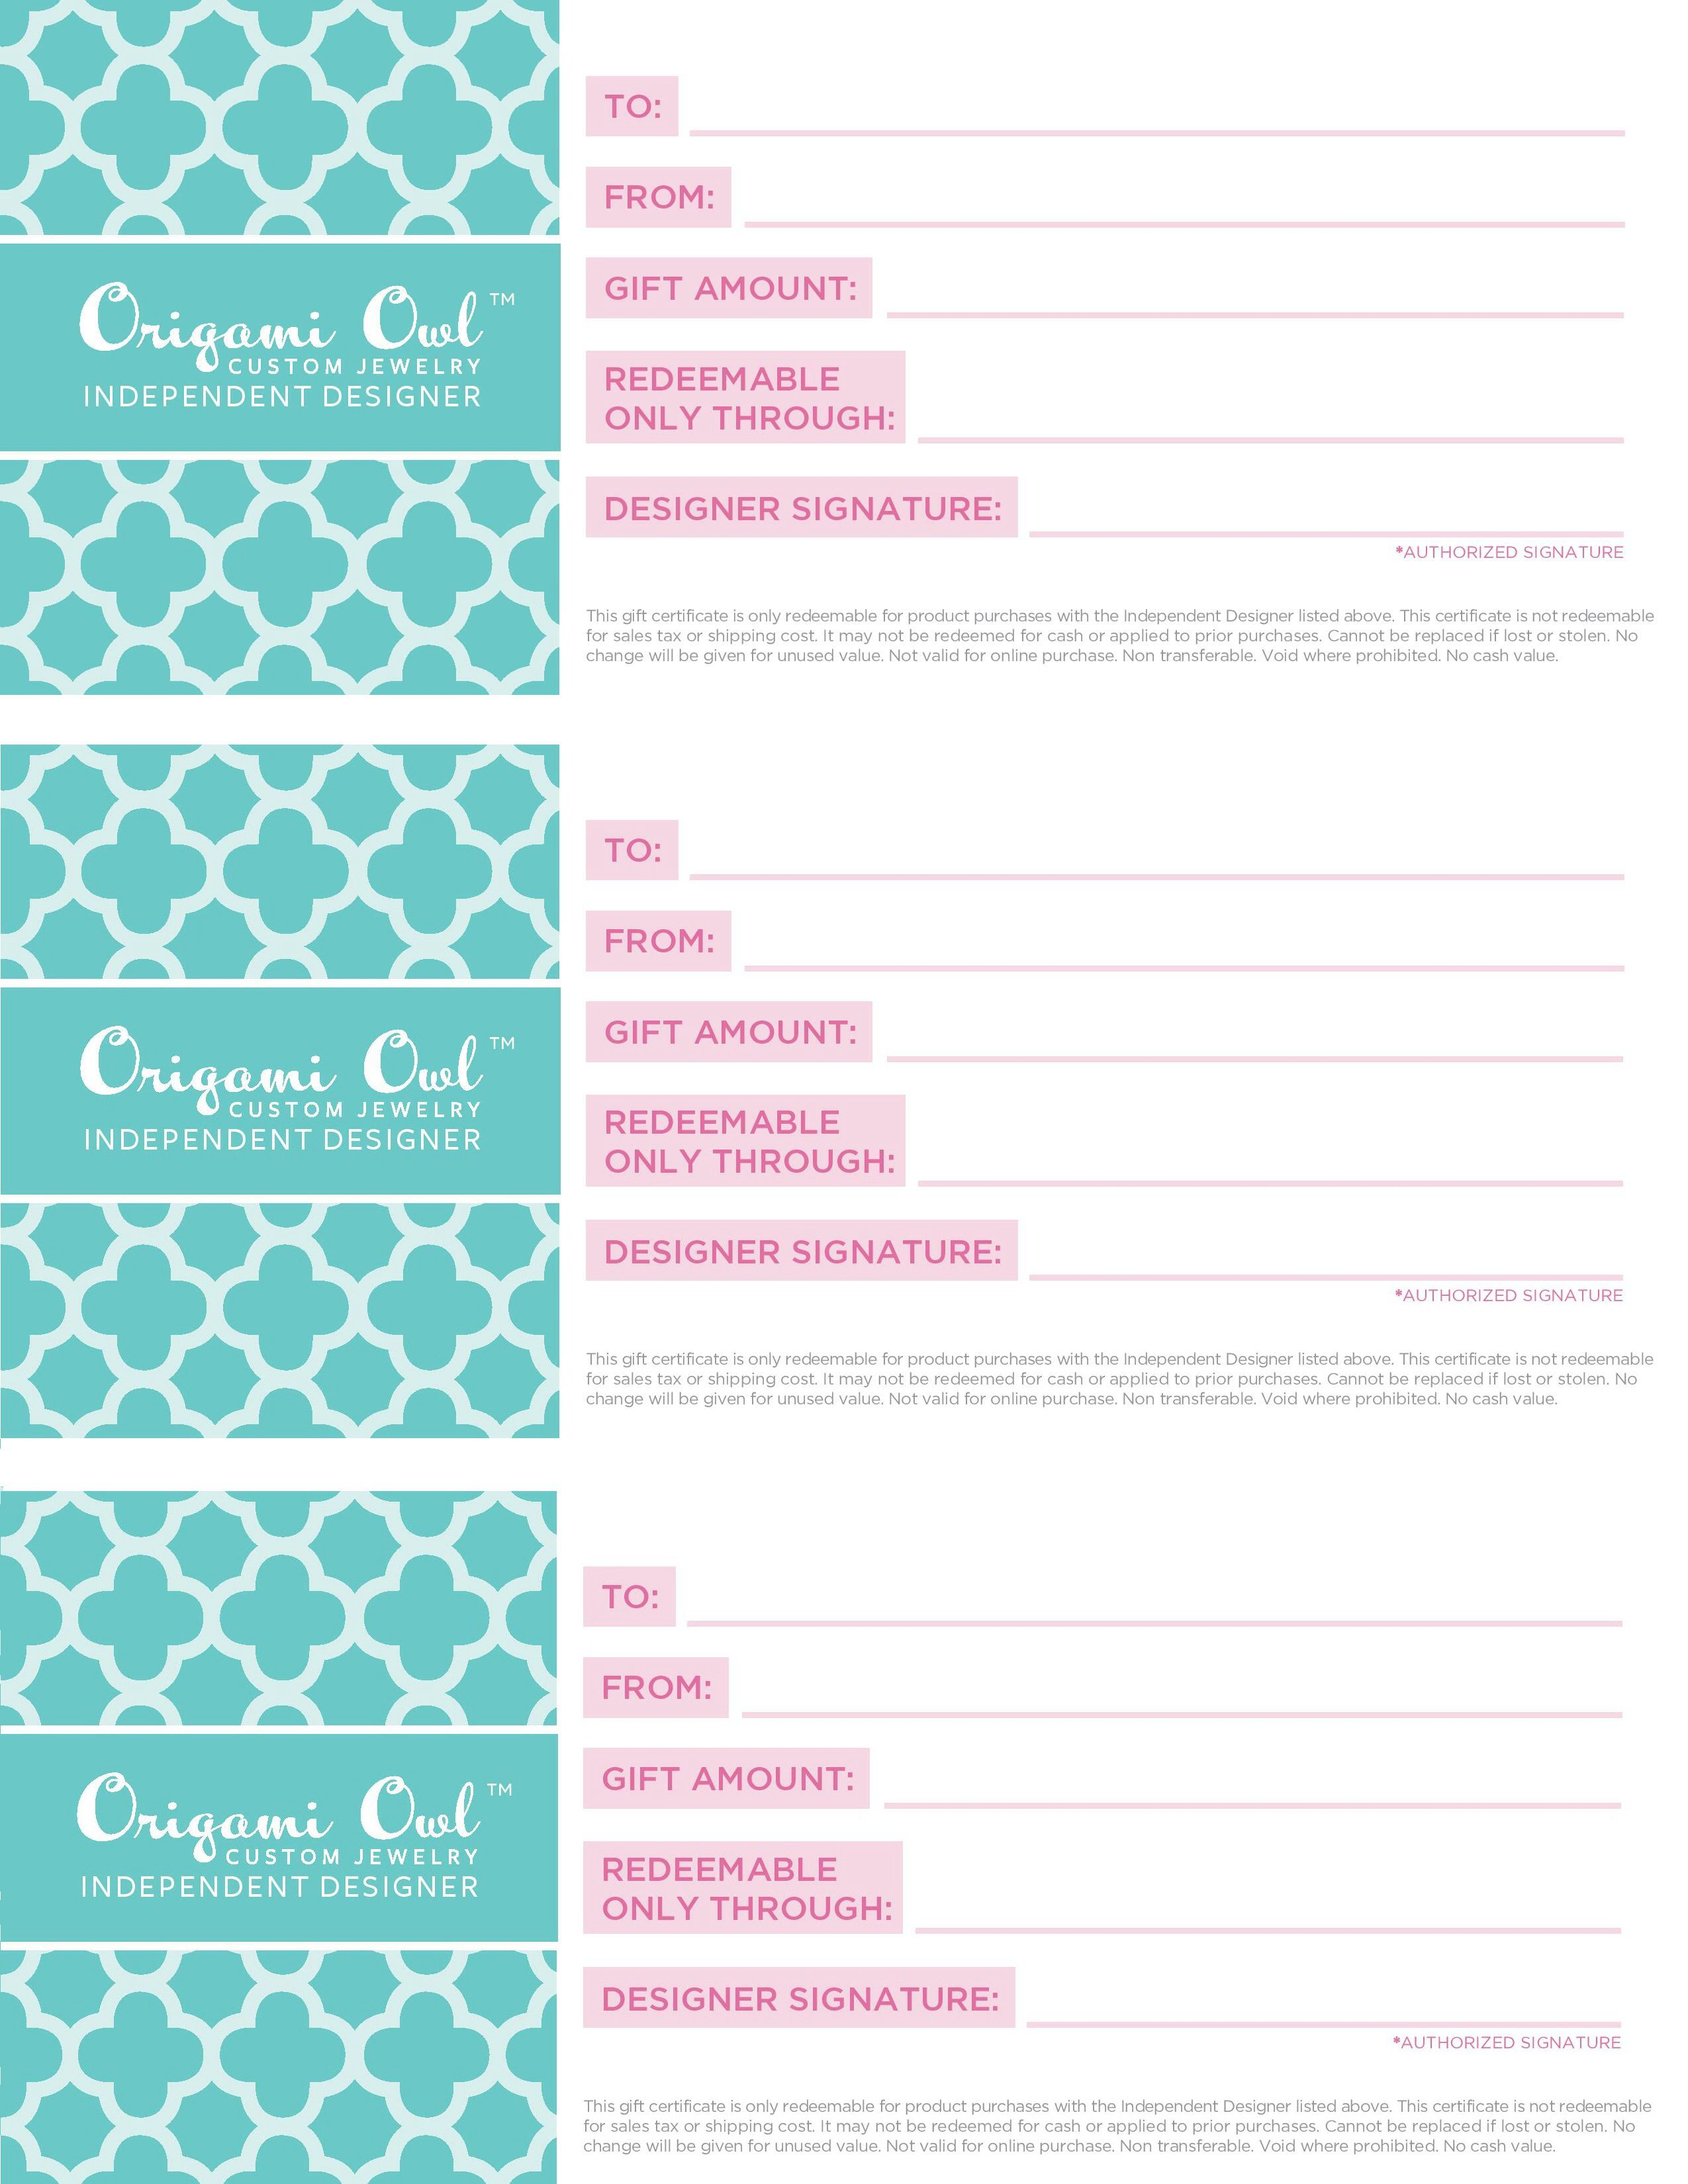 Origami Owl Gift Certificates Available Must Be Used With The